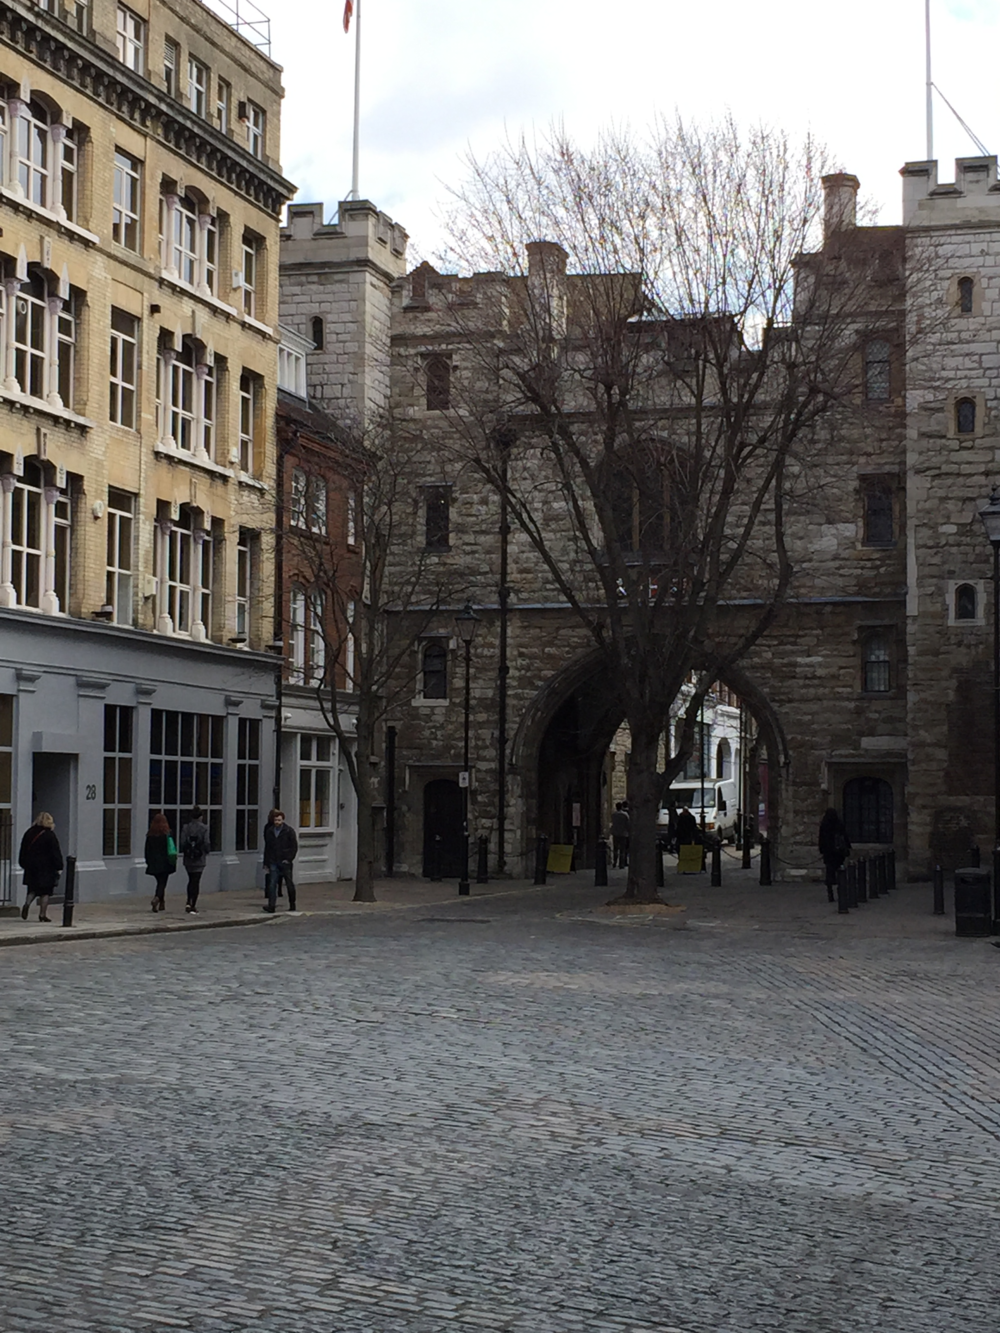 Saint John's Gate, Clerkenwell, London